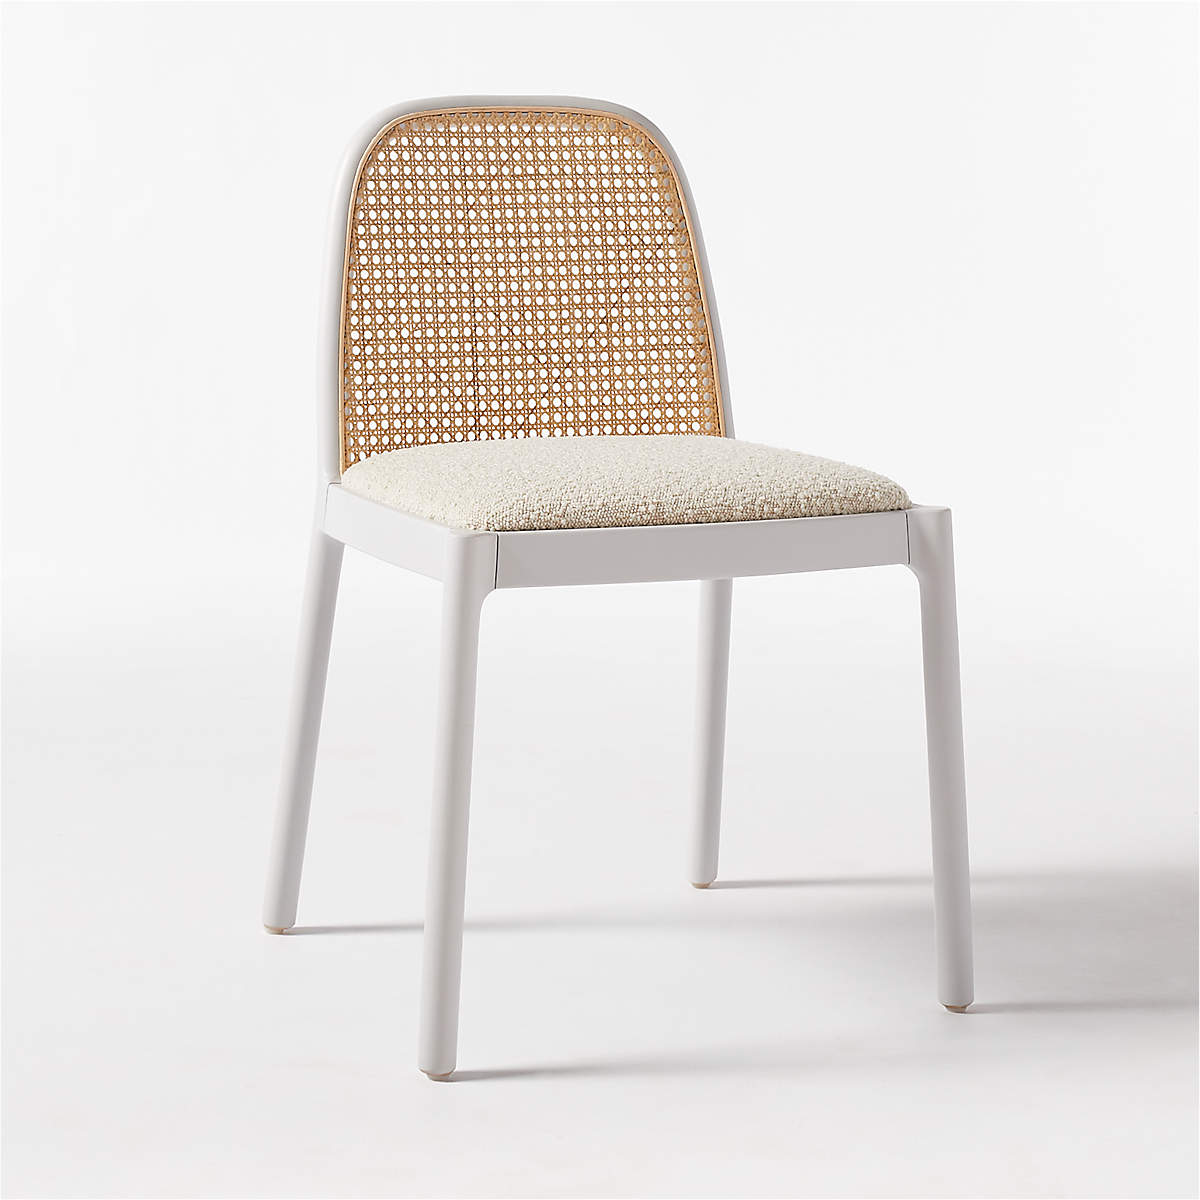 NADIA WHITE CANE CHAIR RESTOCK Early August 2021